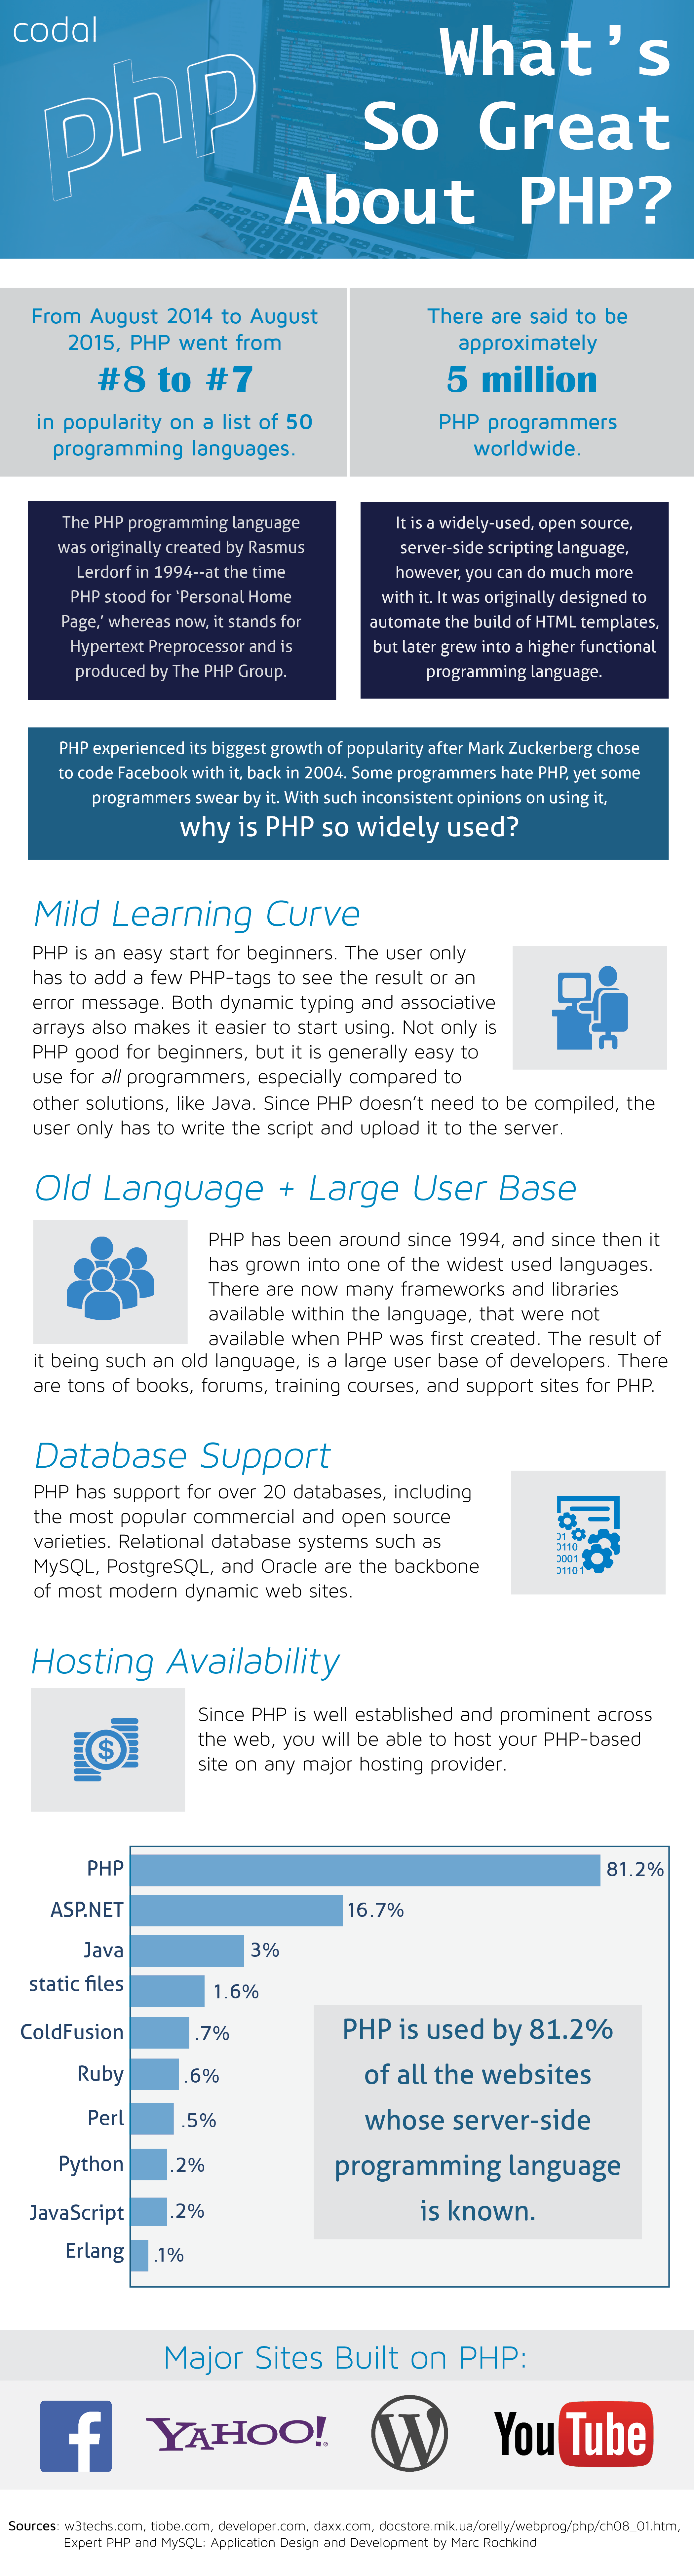 Great About PHP Development - Image 1